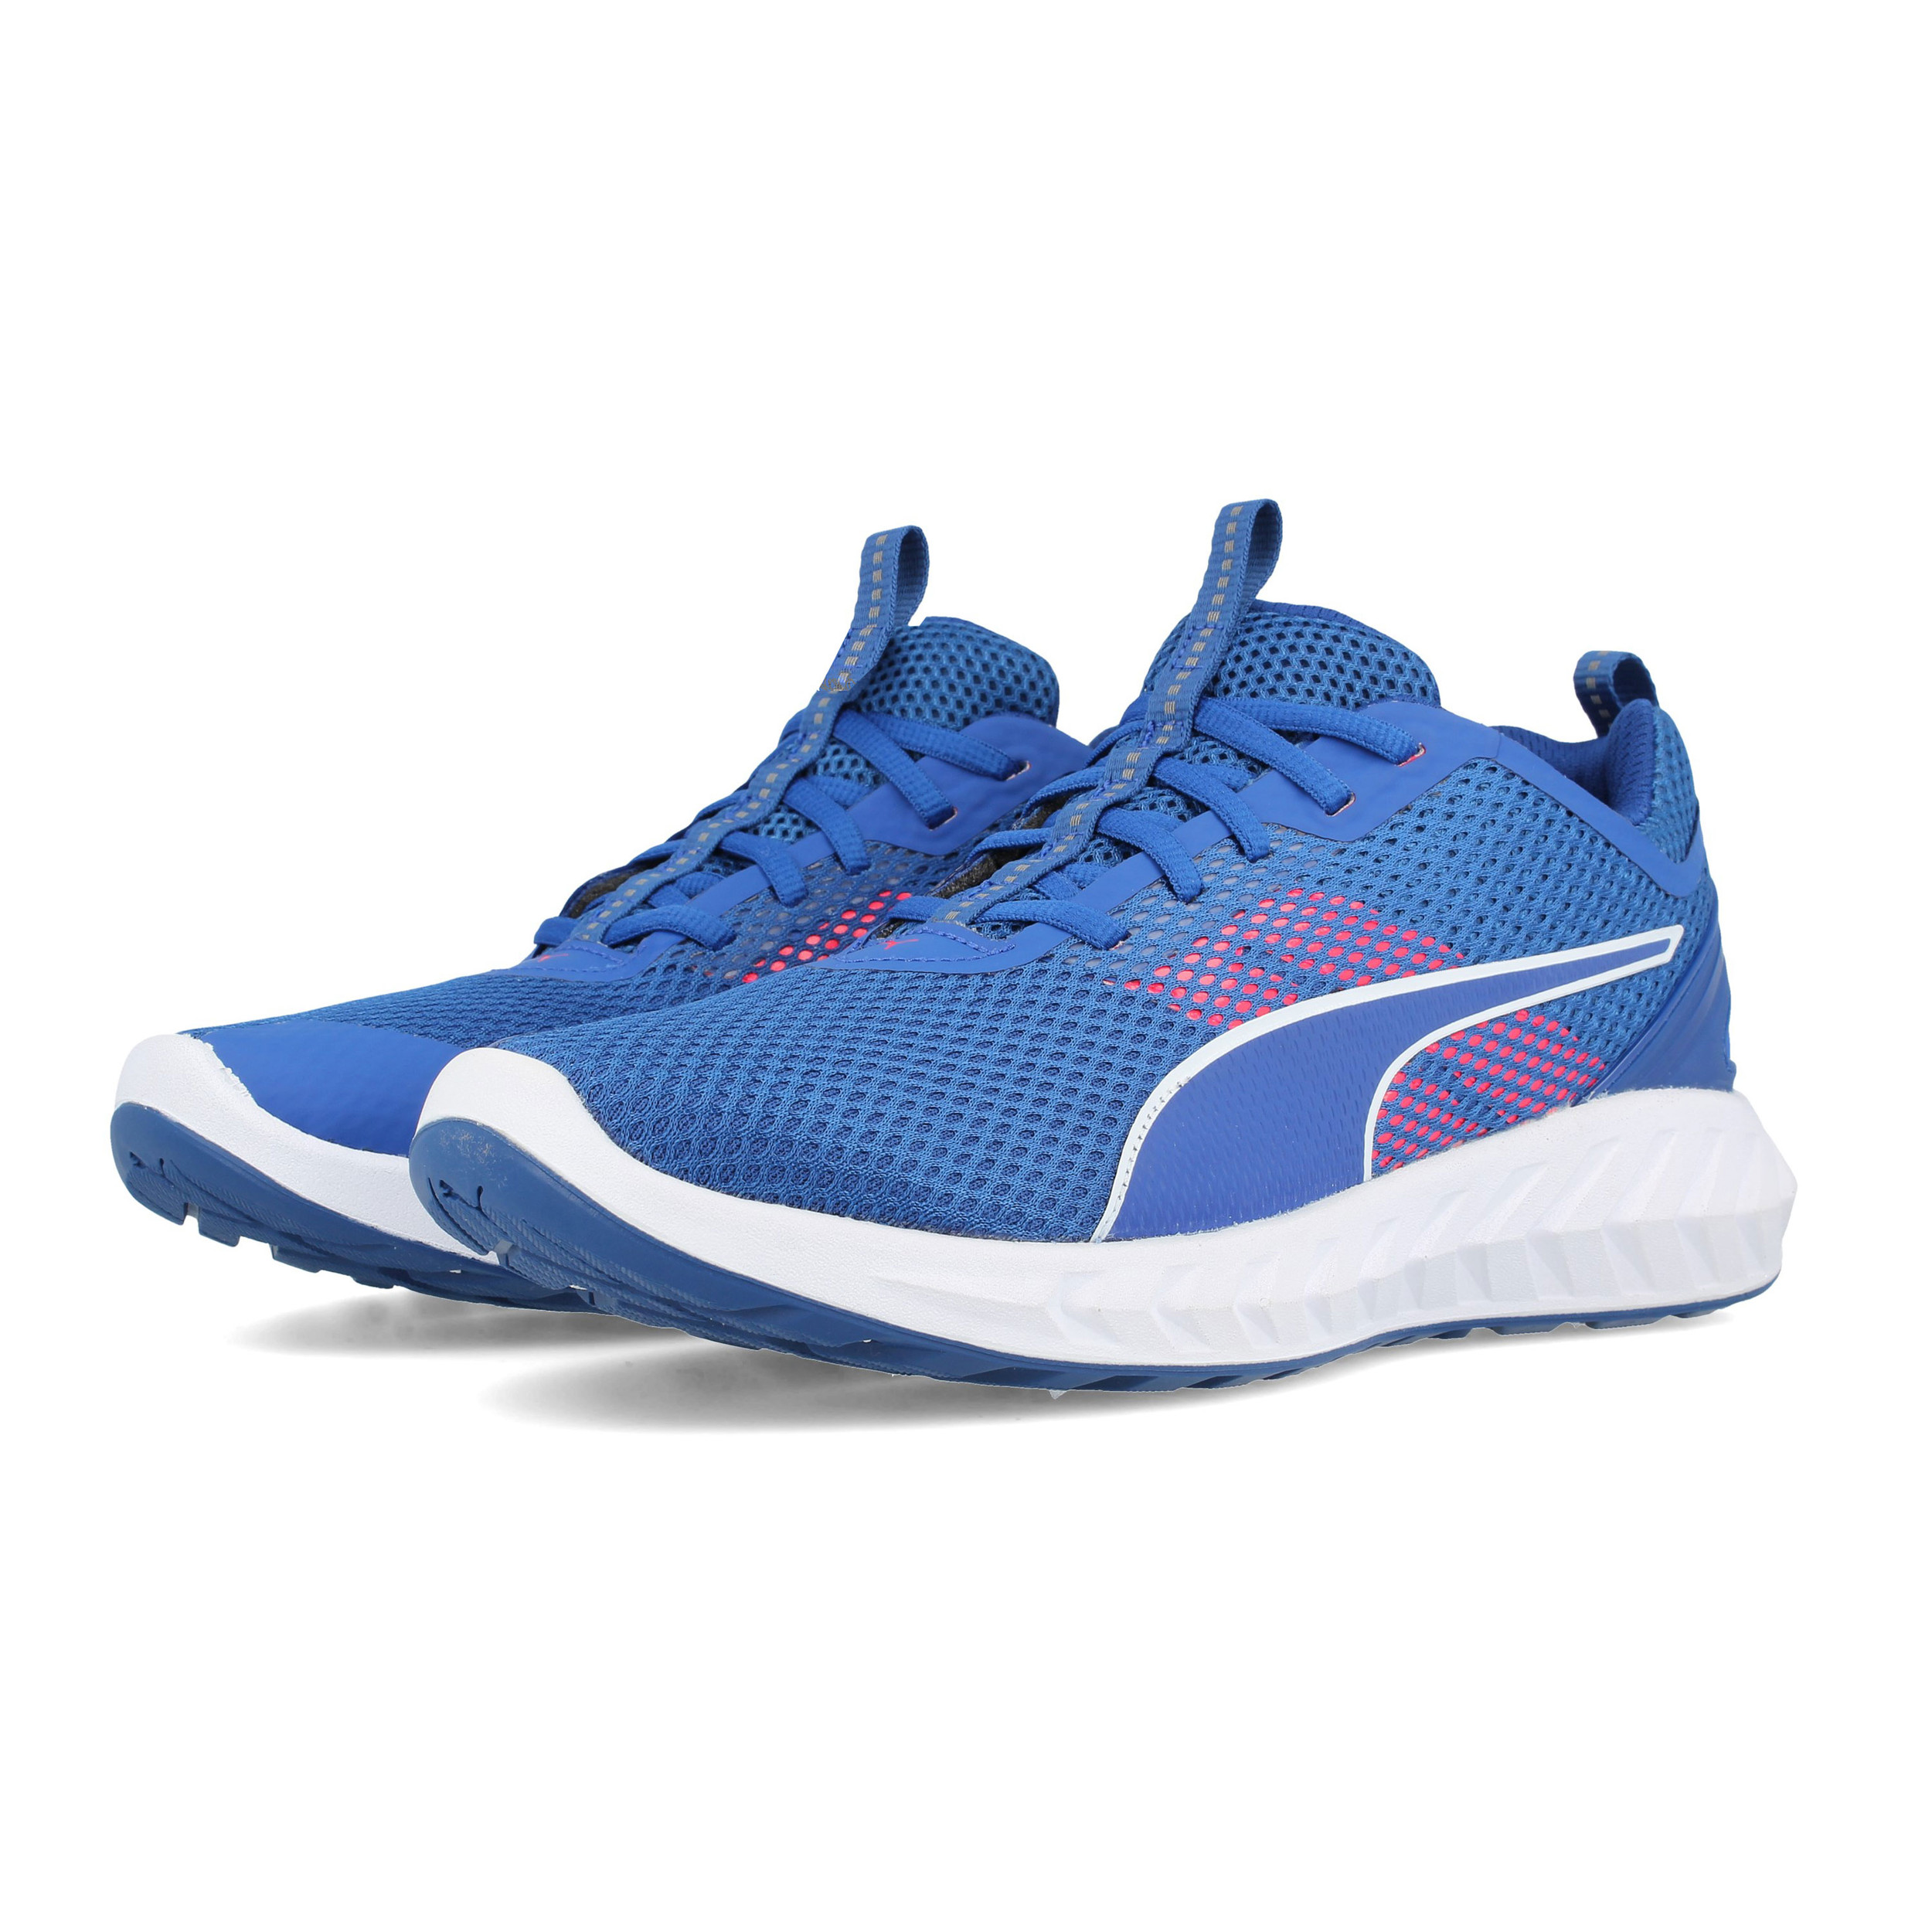 PUMA homme Ignite Ultimate 2 Chaussures De Course Baskets Baskets Bleu Sports